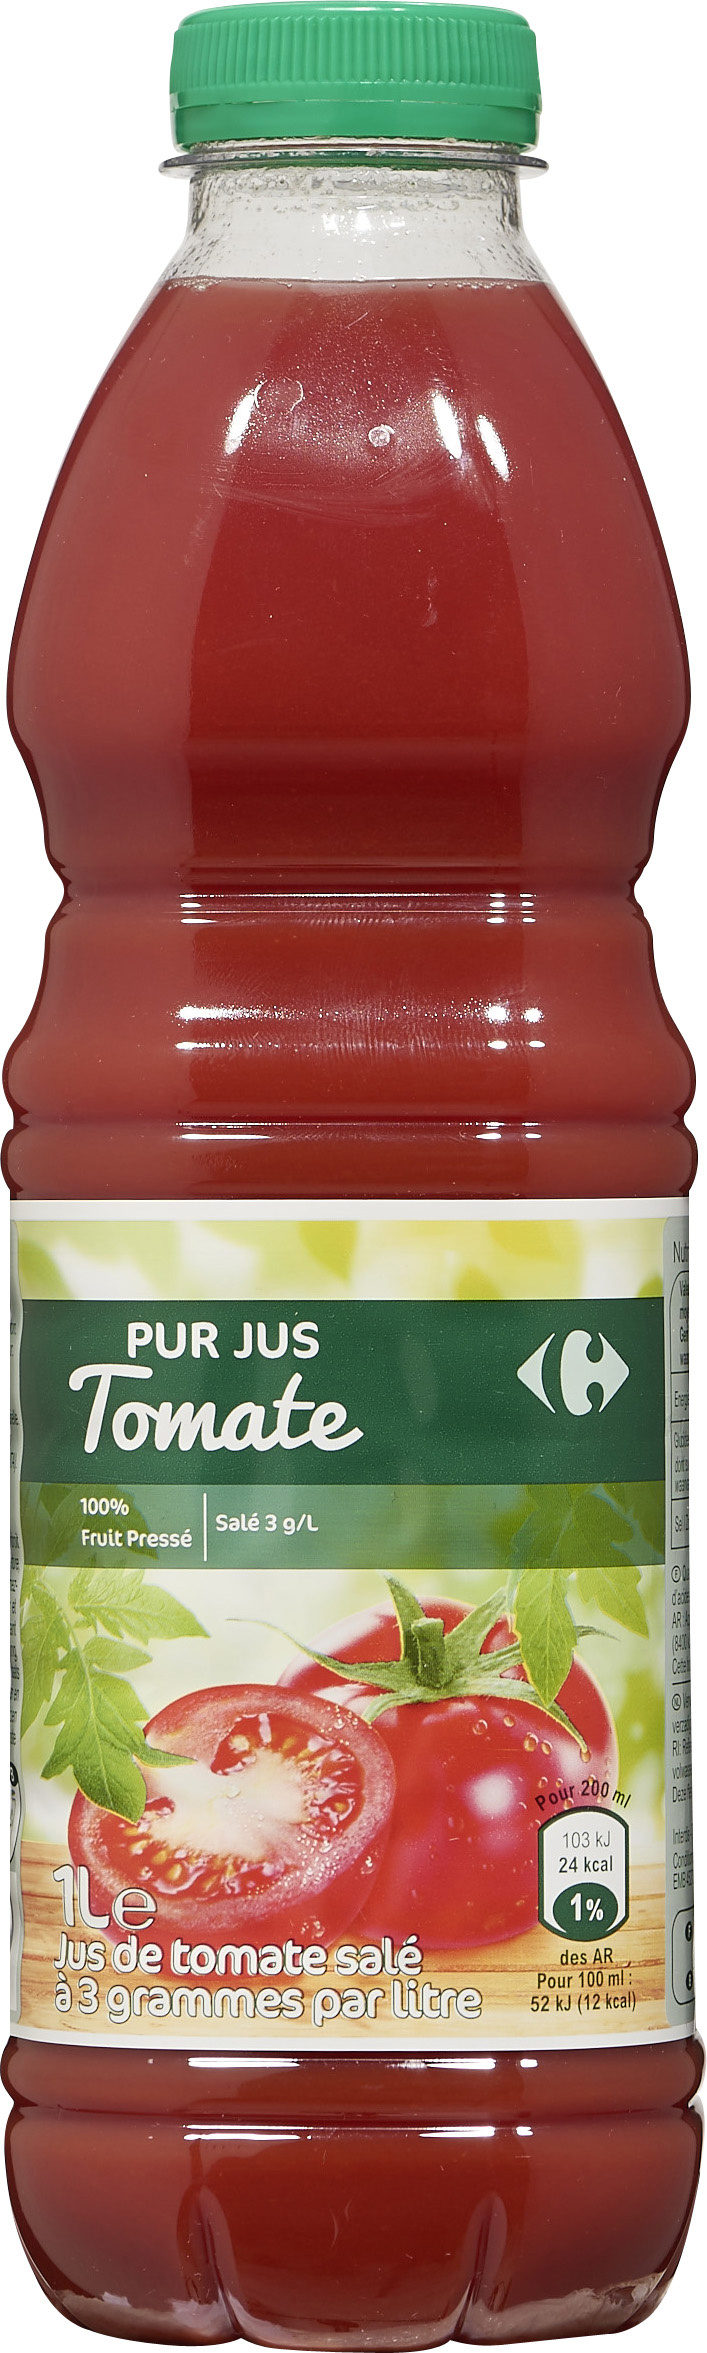 PUR JUS Tomate - Product